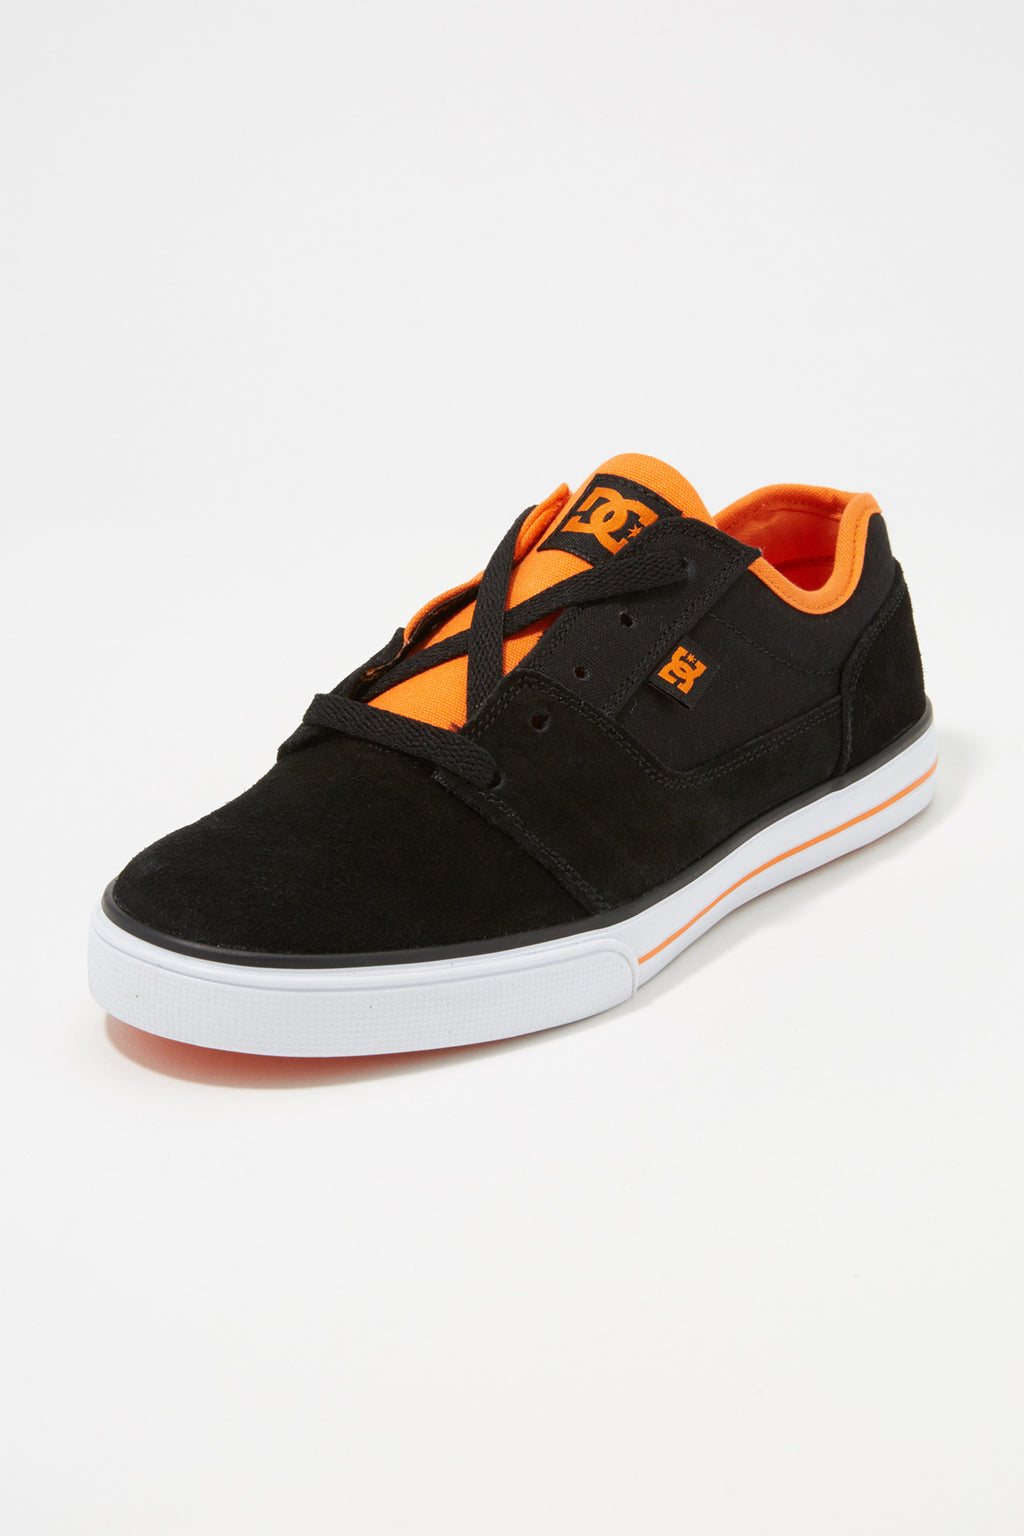 DC Youth Tonik Black Sneakers